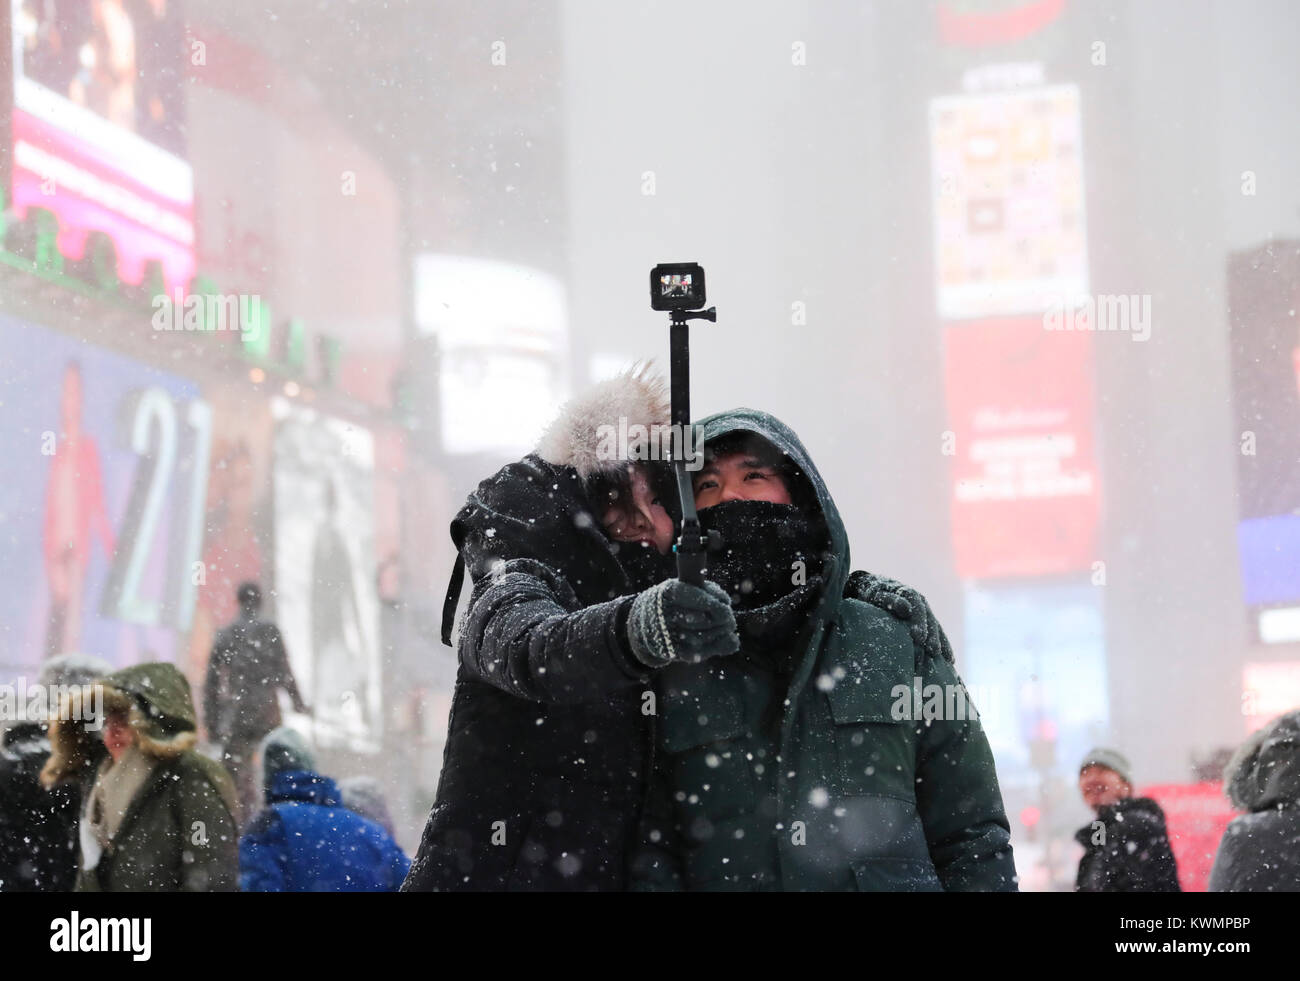 New York, USA. 4th Jan, 2018. People take selfies at Times Square in New York, the United States, Jan. 4, 2018. - Stock Image